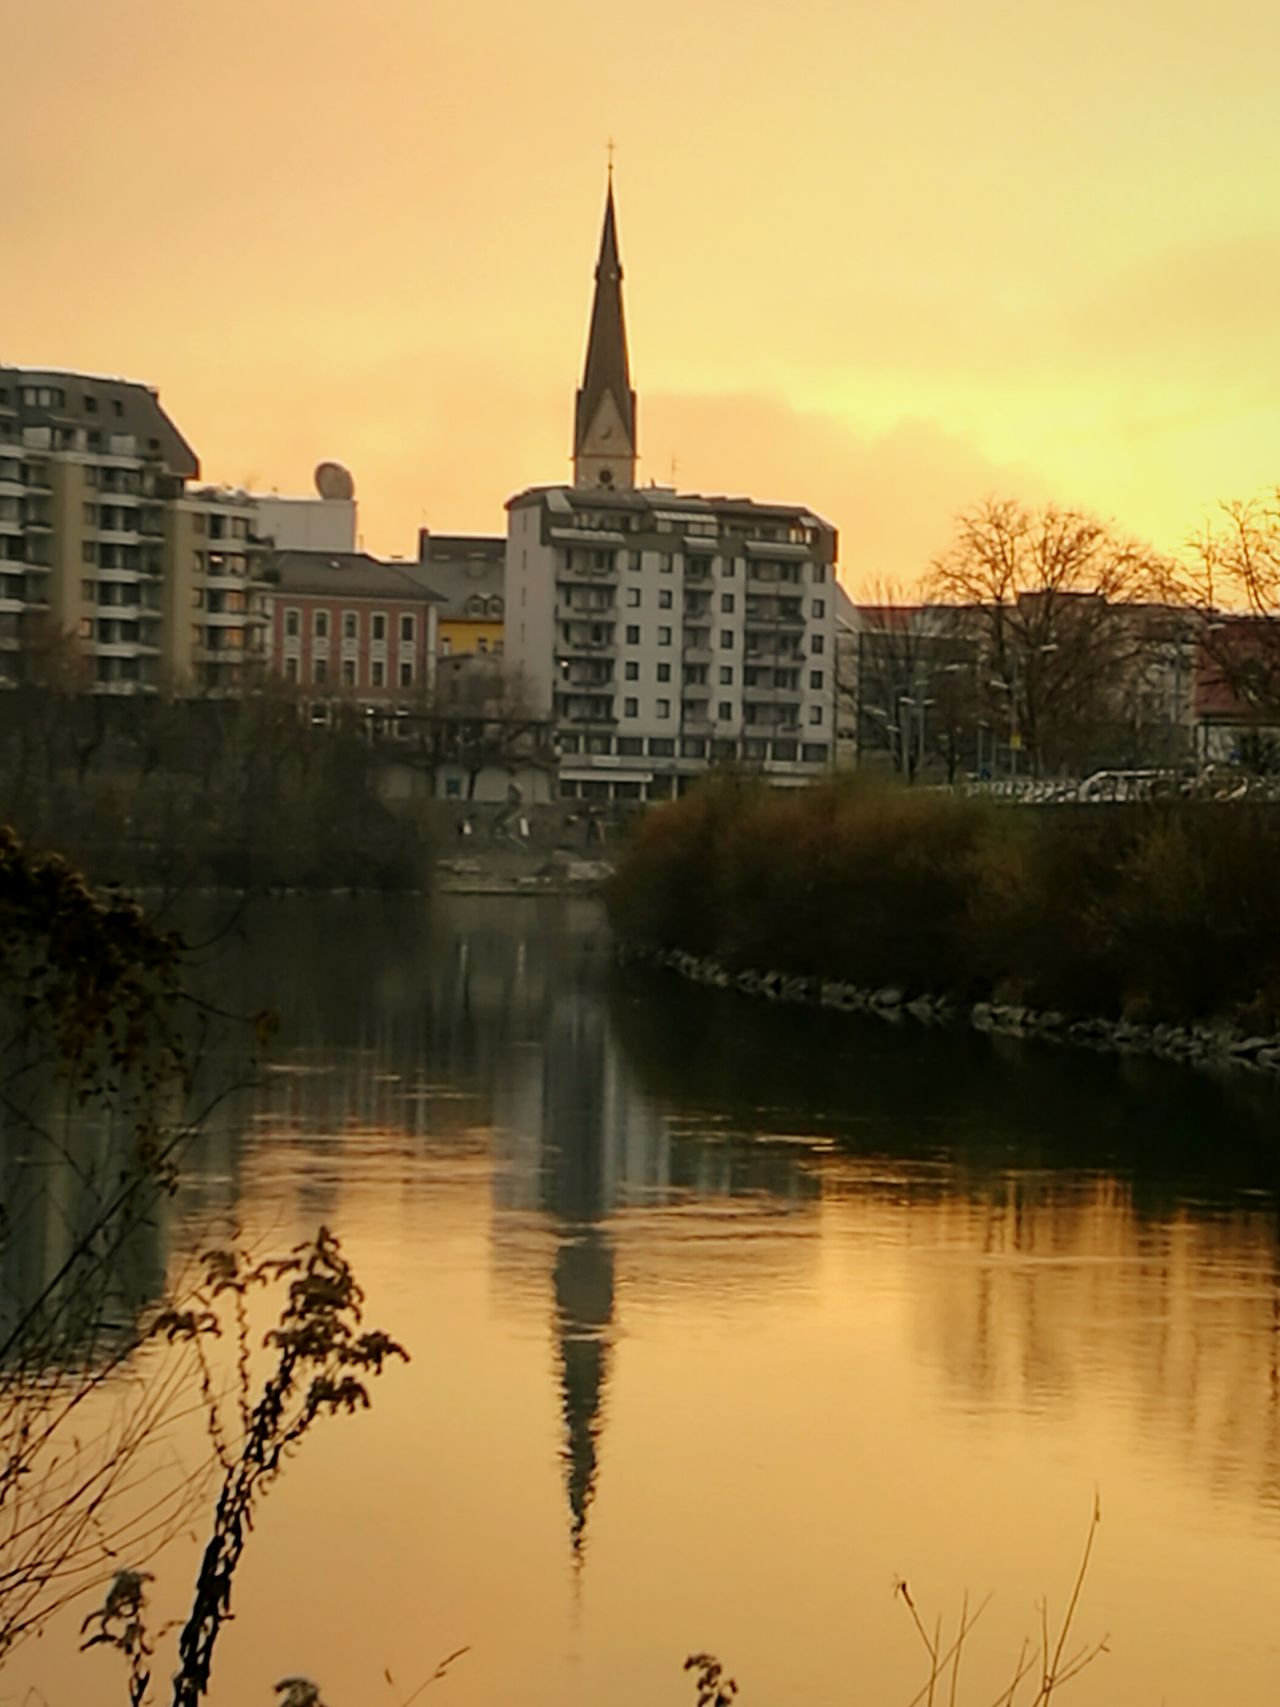 City Reflection Sunset Built Structure Sky Travel Bridge - Man Made Structure Building Exterior Cityscape Water Villach Love Architecture Outdoors Tree Sundaymorning River View Walking Around Cityscapes Tranquility Reflection